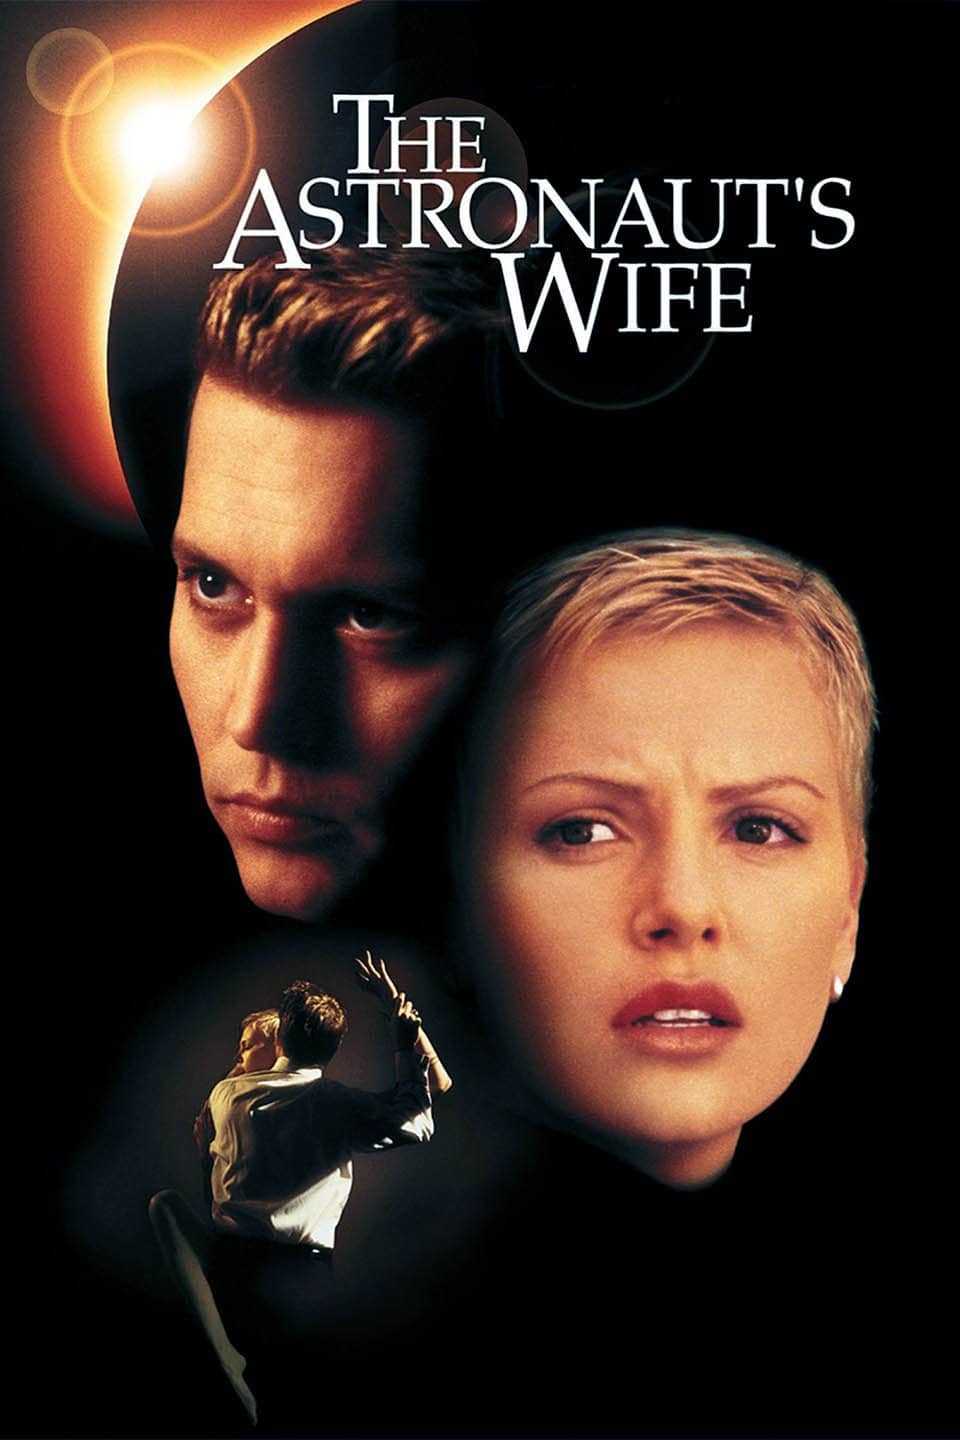 The Astronaut's Wife, 1999